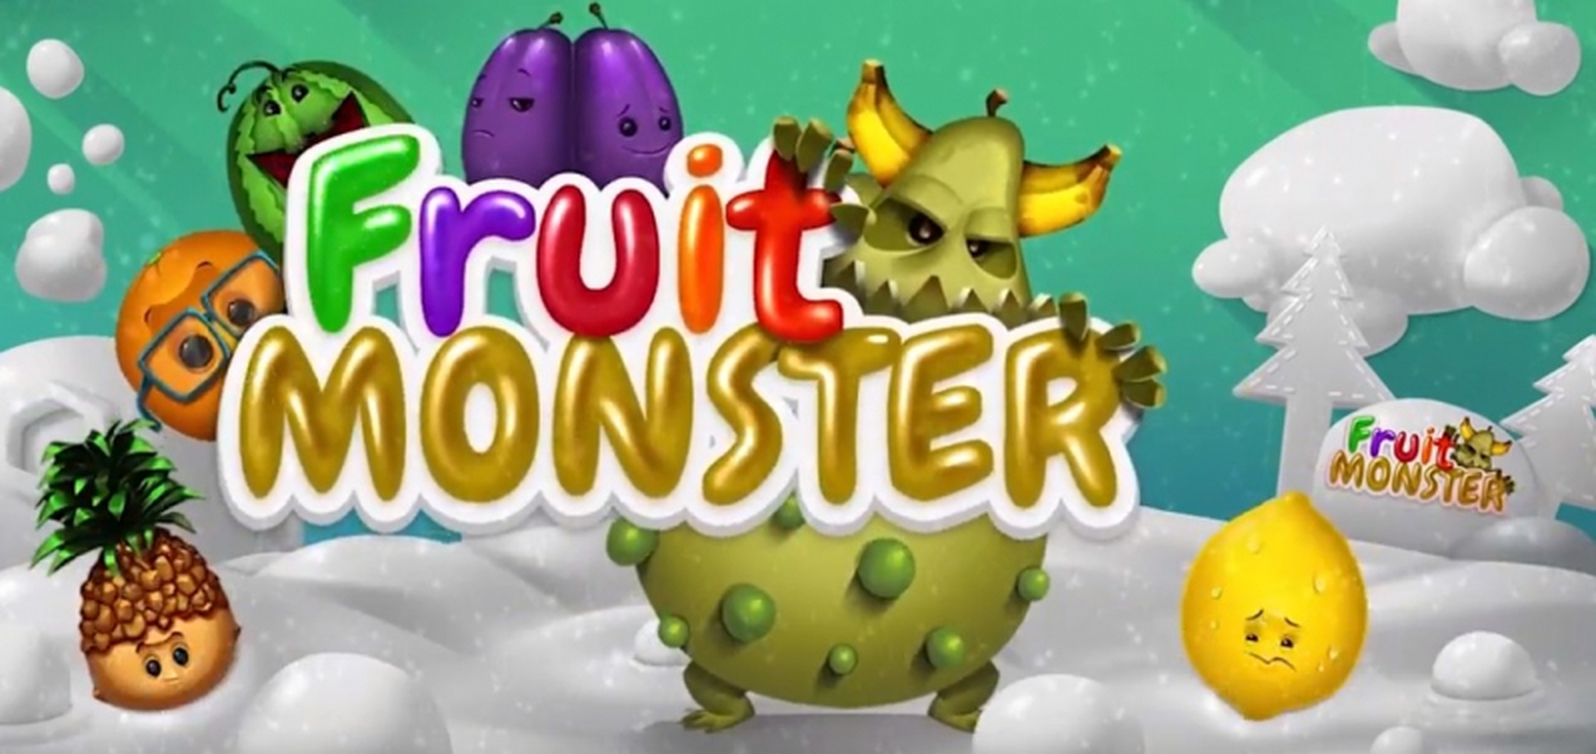 The Fruit Monster Online Slot Demo Game by Spinmatic